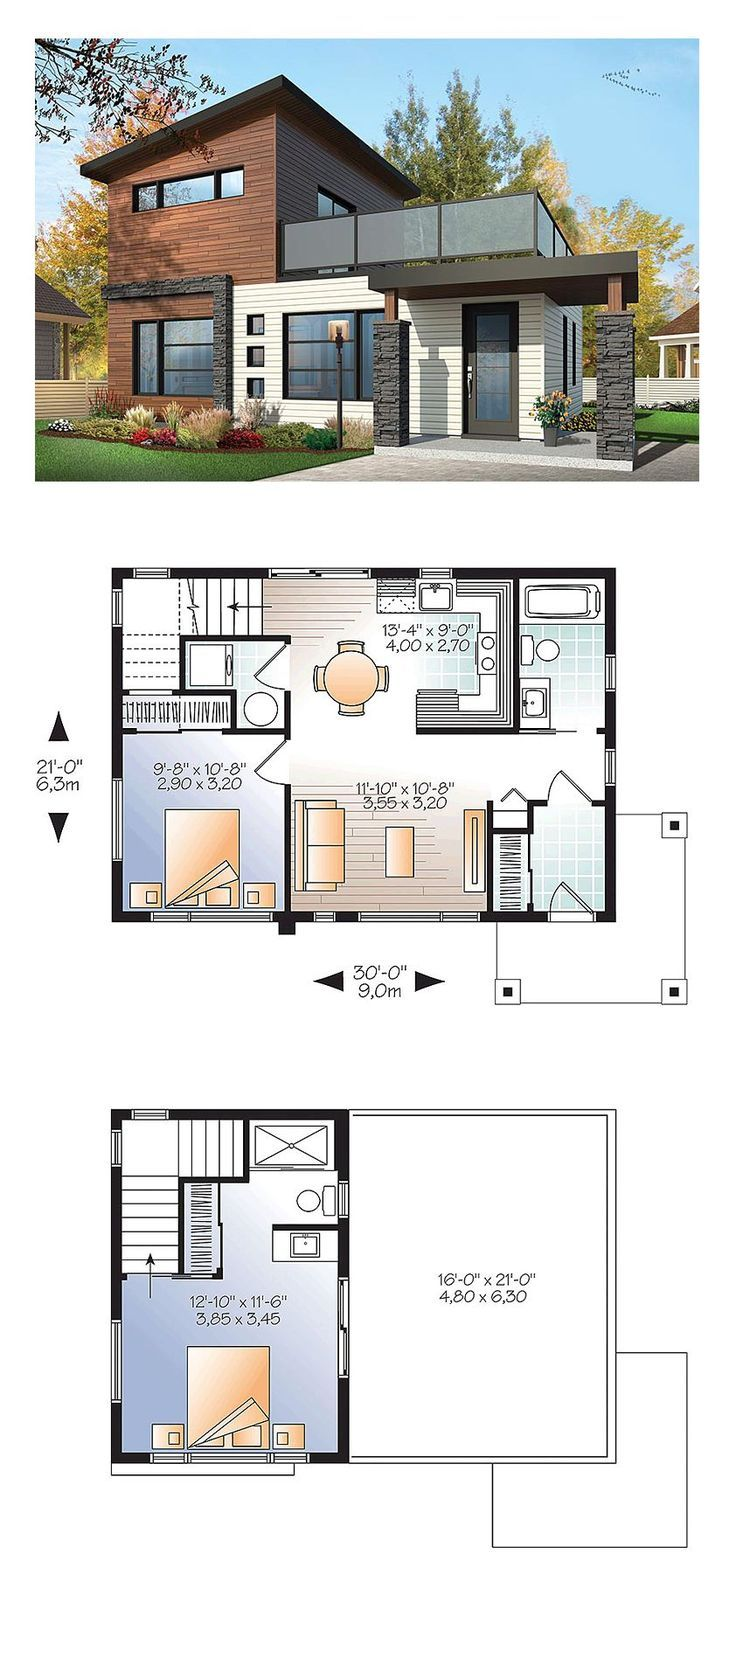 Modern house plan 76461 | Total living space: 924 square …